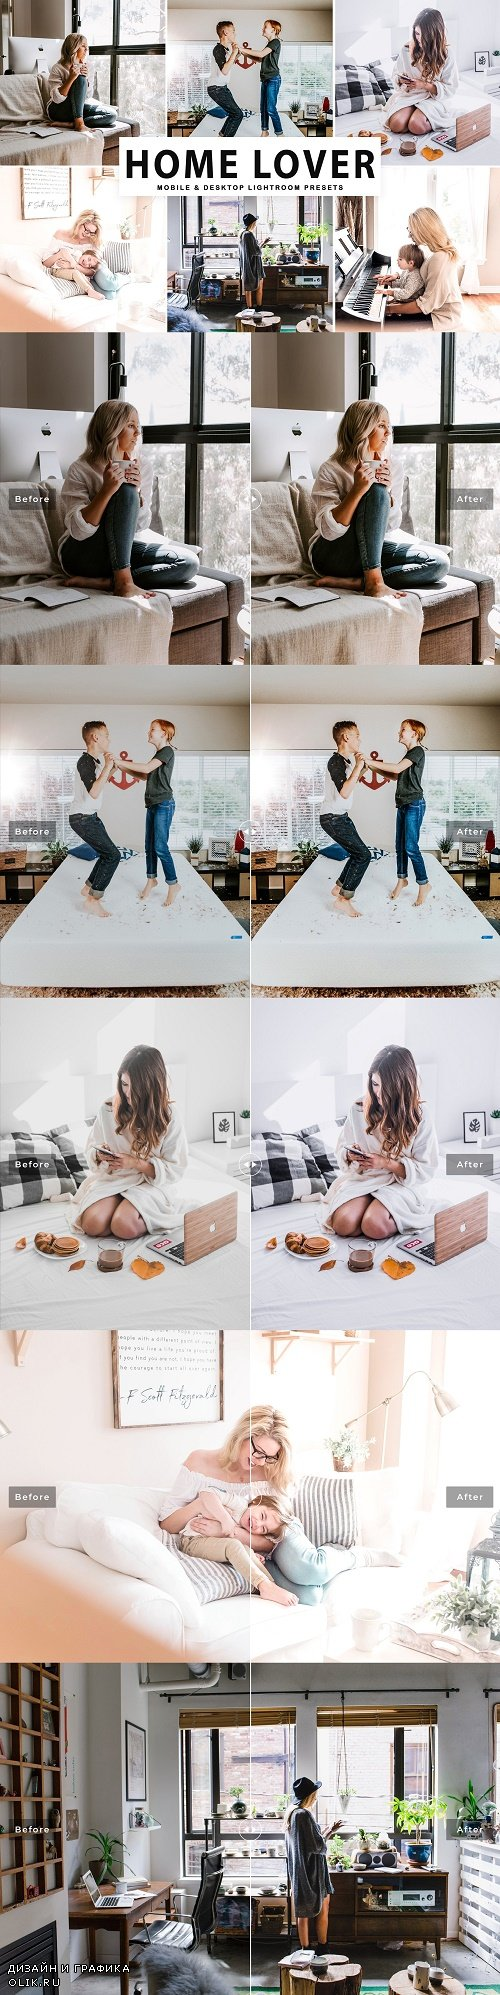 Home Lover Pro Lightroom Presets - 4050885